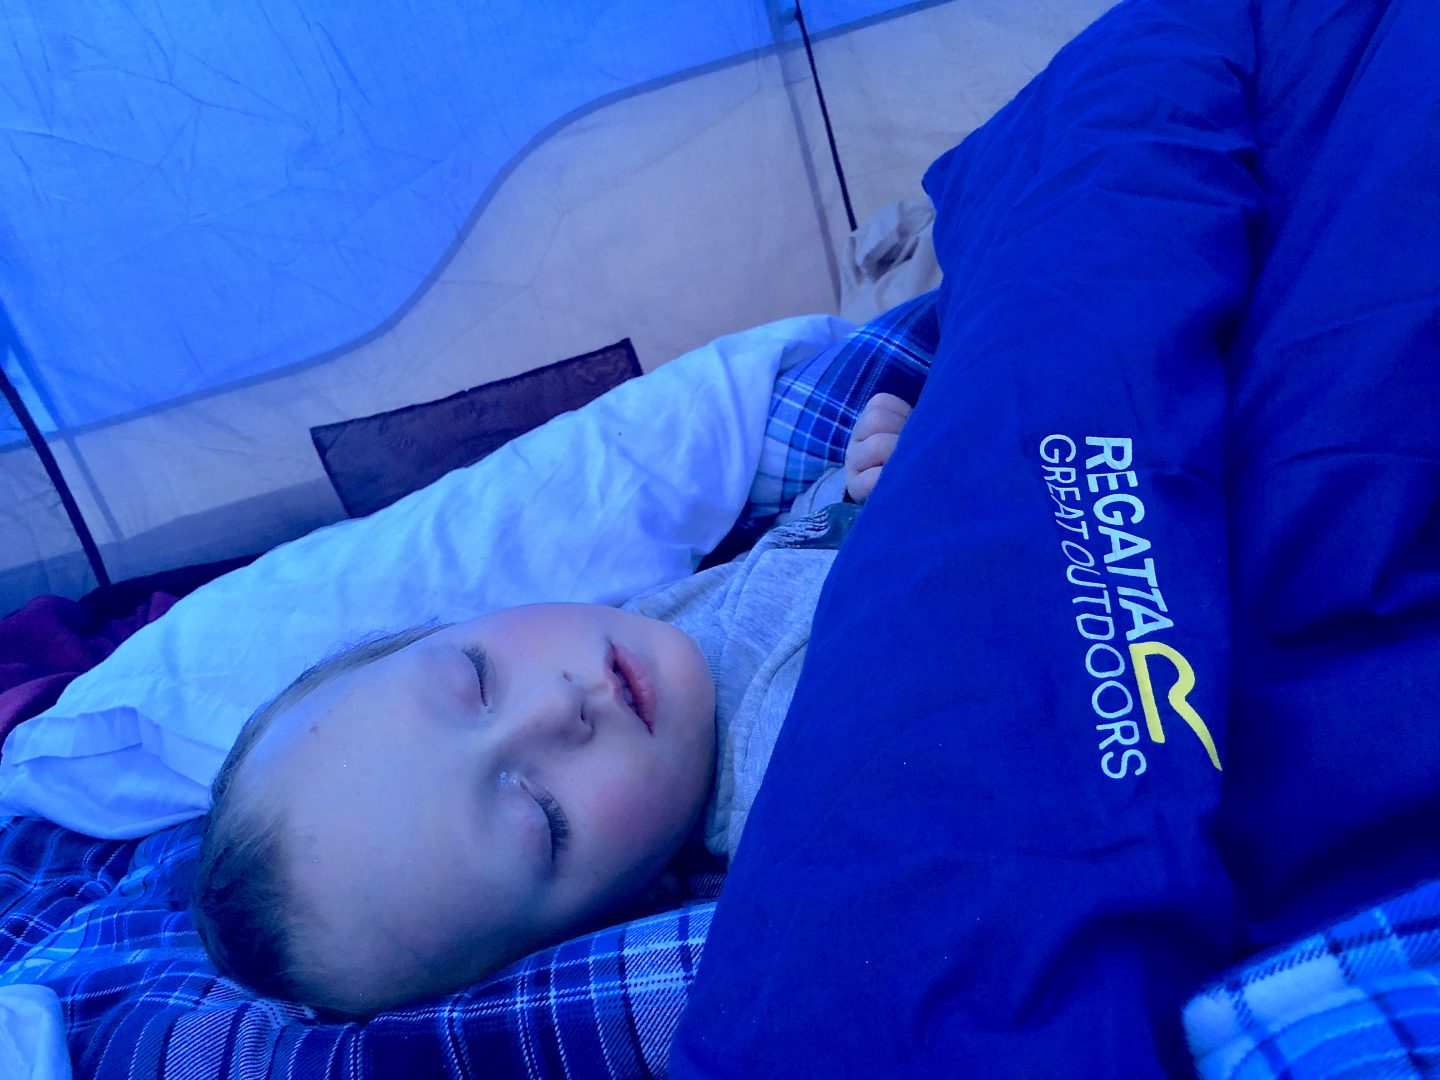 A young boy fast asleep inside his sleeping bag in a tent.